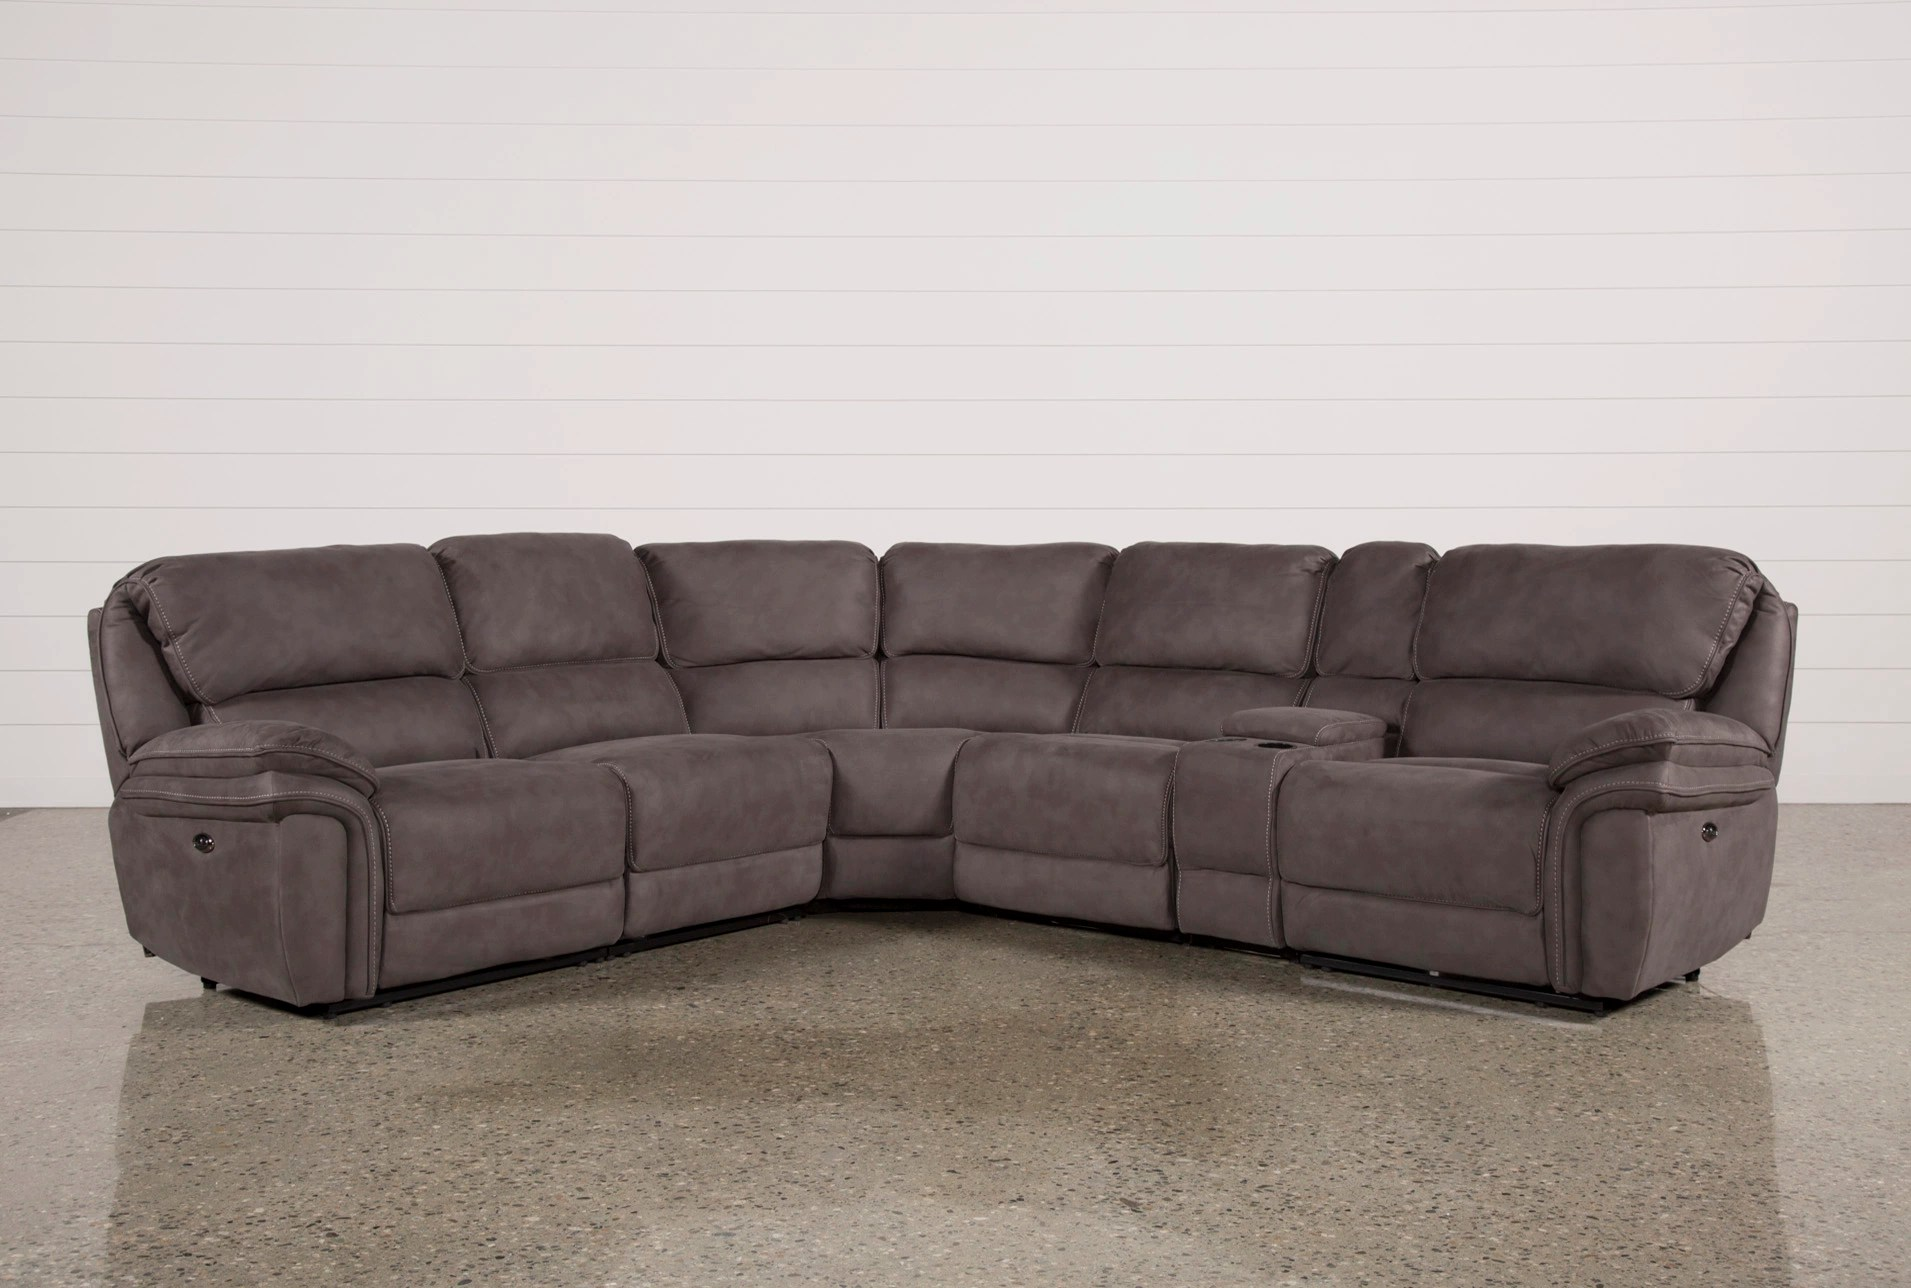 havertys newport sofa table apartment sized sofas norfolk grey 6 piece sectional living spaces added to cart